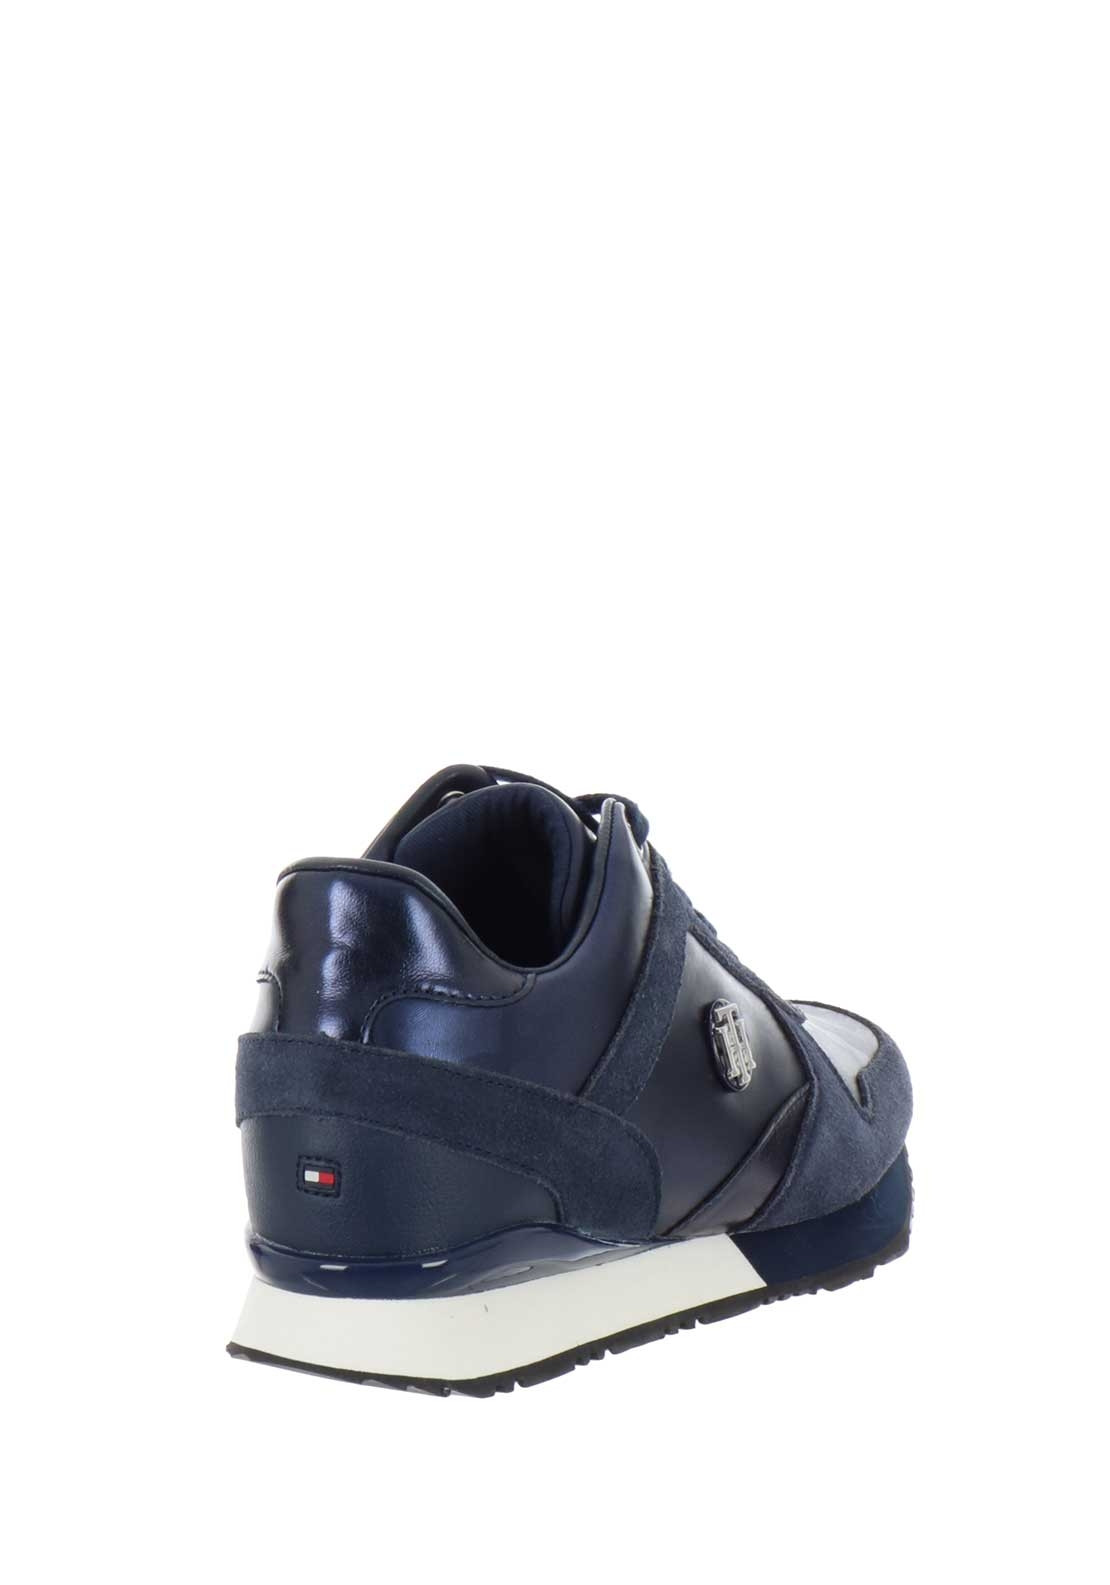 534a3ceb19539 Tommy Hilfiger Womens Camo Wedged Trainers, Navy | McElhinneys